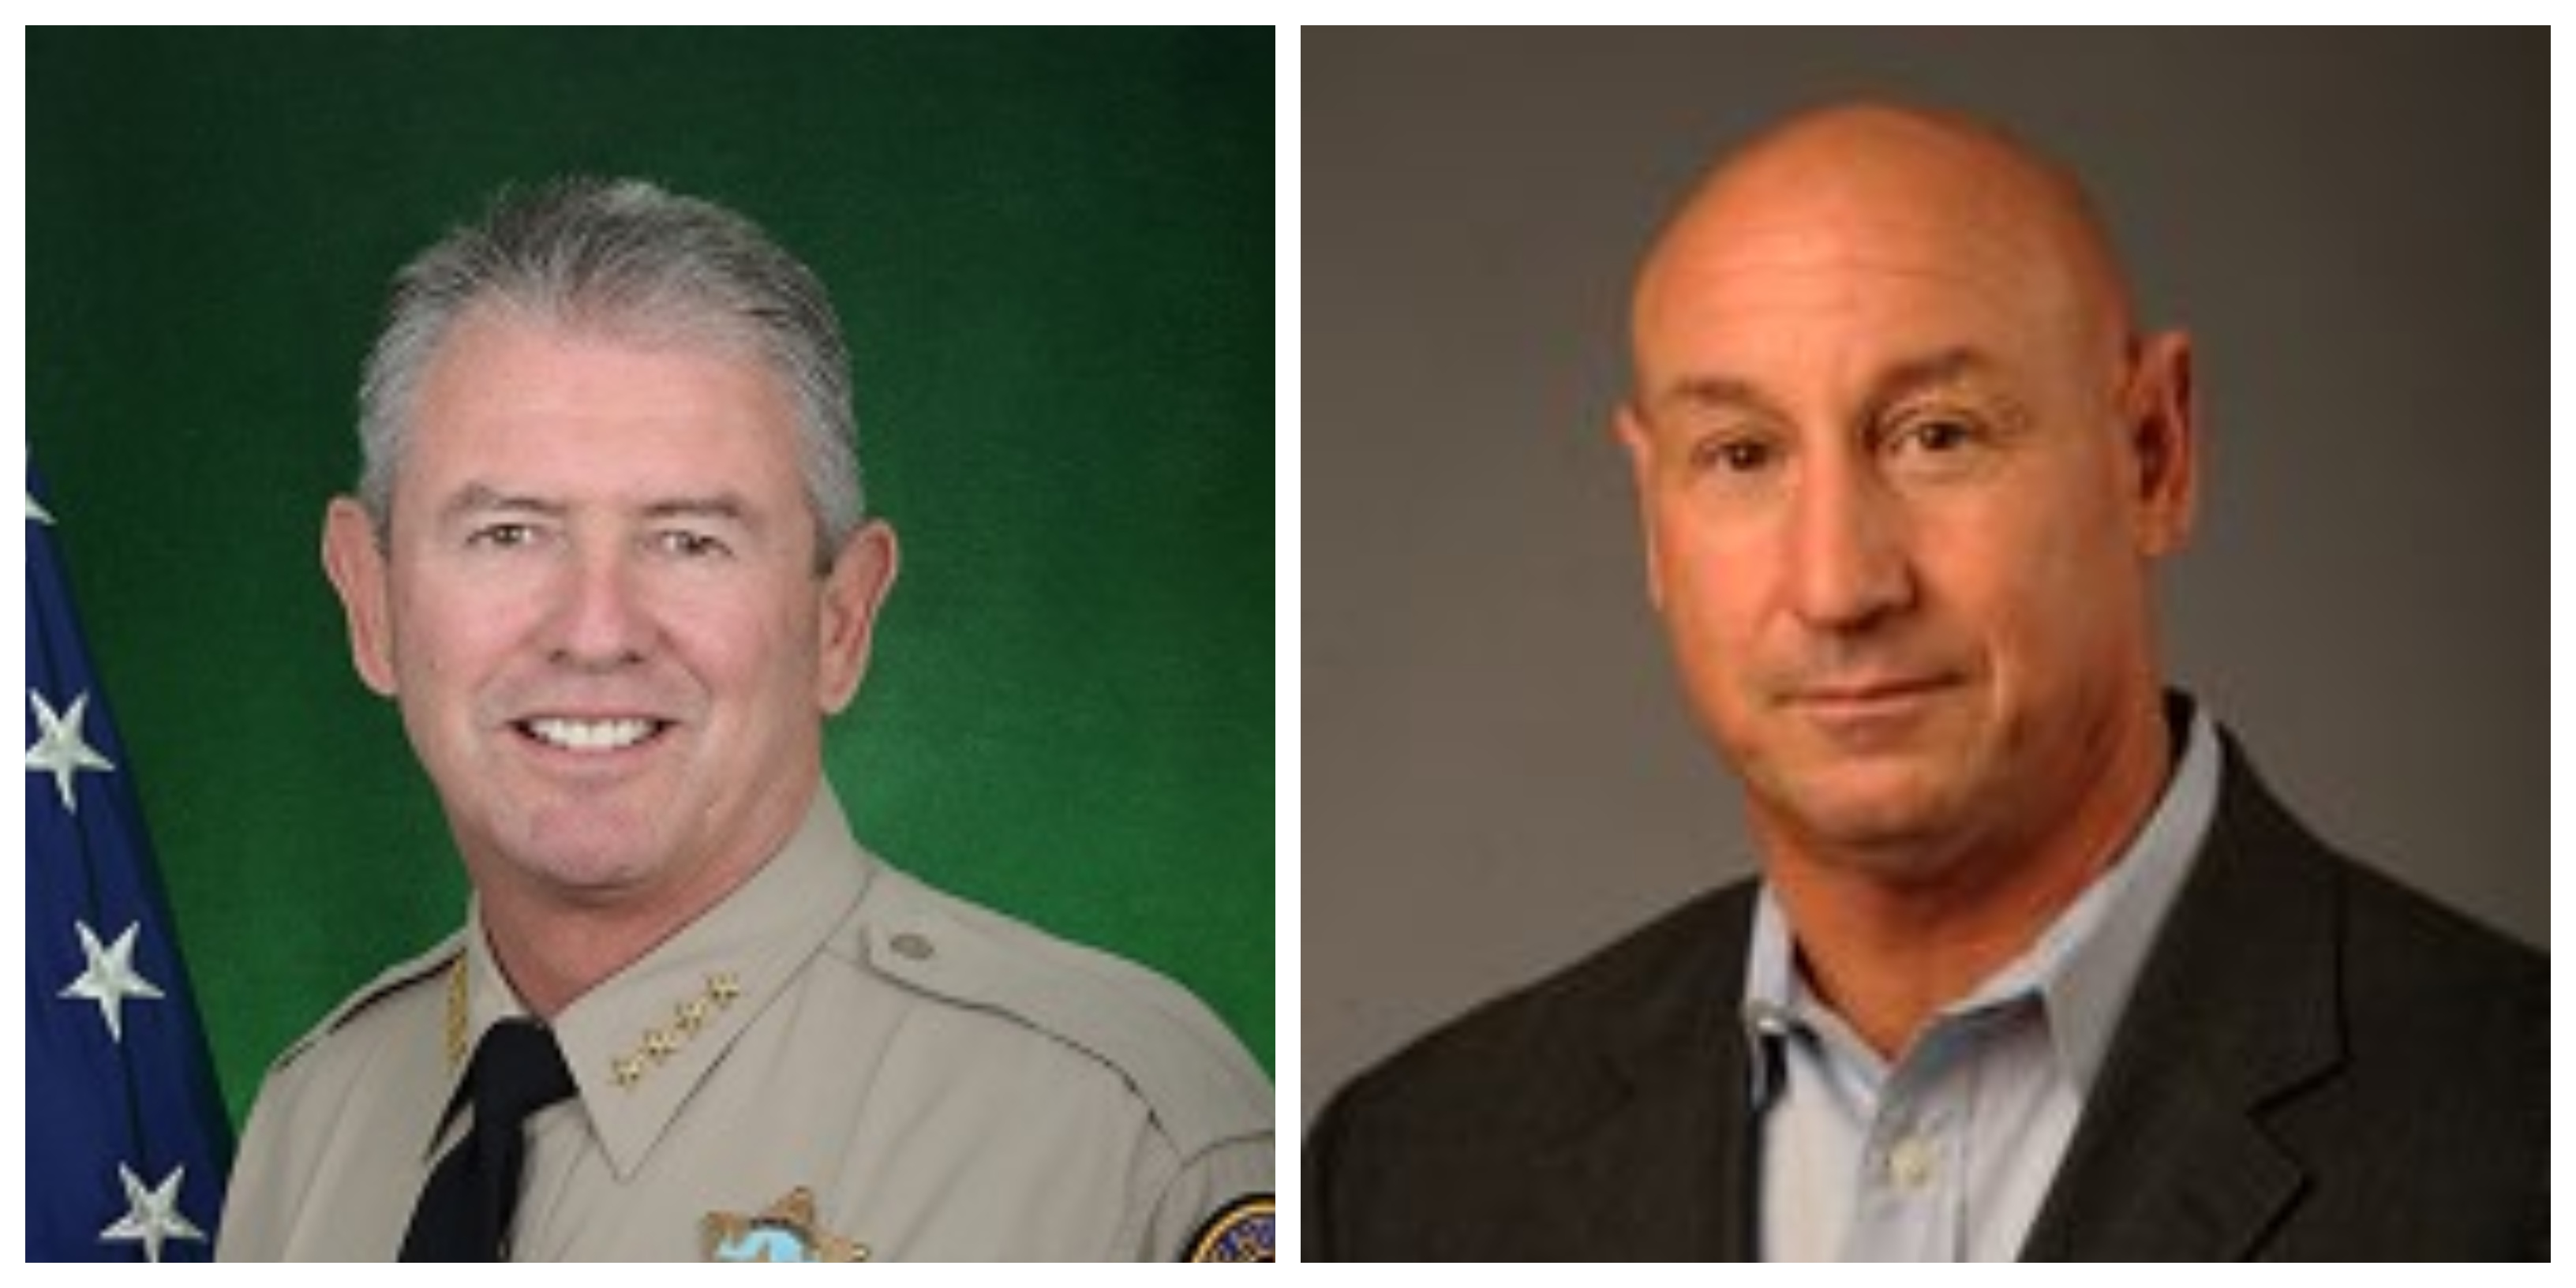 Geoff Dean, Former Sheriff of Ventura County, and Andy Fox, Former Mayor of Thousand Oaks